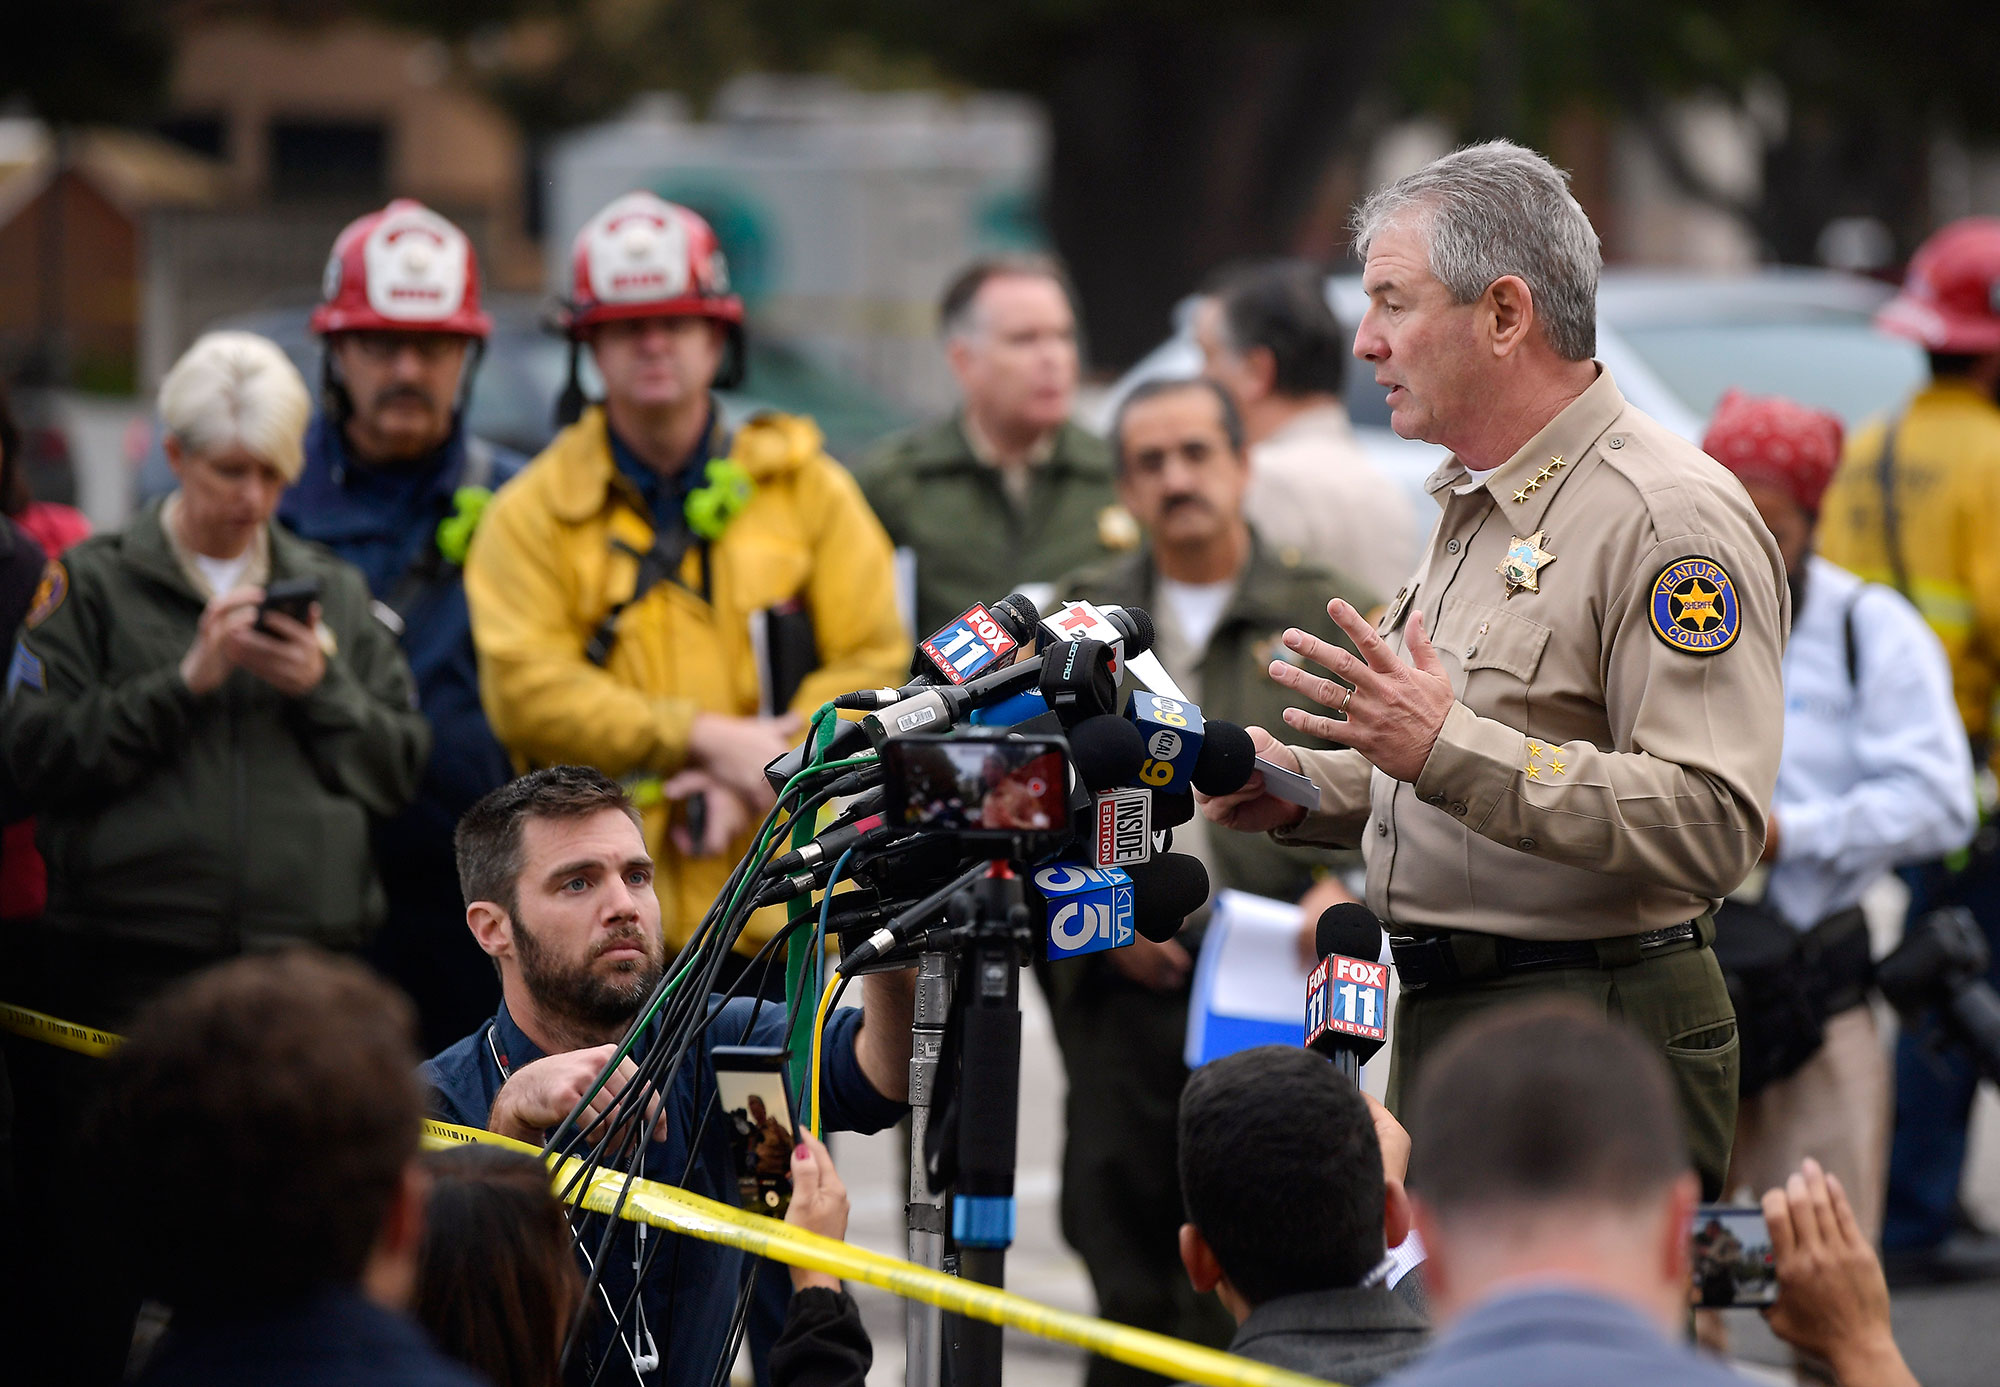 "<div class=""meta image-caption""><div class=""origin-logo origin-image none""><span>none</span></div><span class=""caption-text"">Ventura County Sheriff Geoff Dean speaks to reporters near the scene in Thousand Oaks, Calif., on Thursday, Nov. 8, 2018. (Mark J. Terrill/AP Photo)</span></div>"